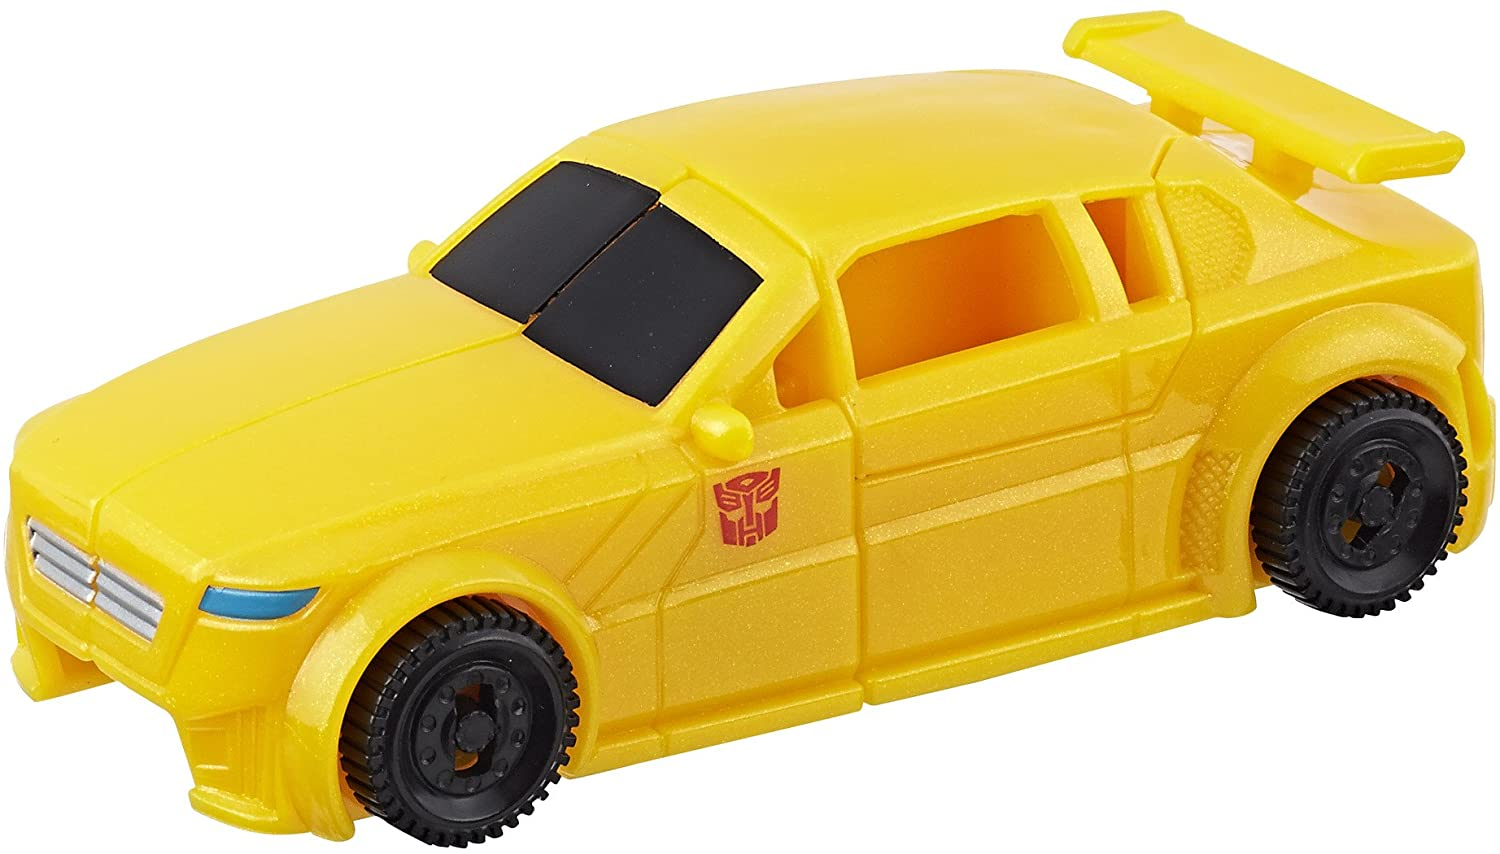 Transformers E1164 Authentic Bumblebee